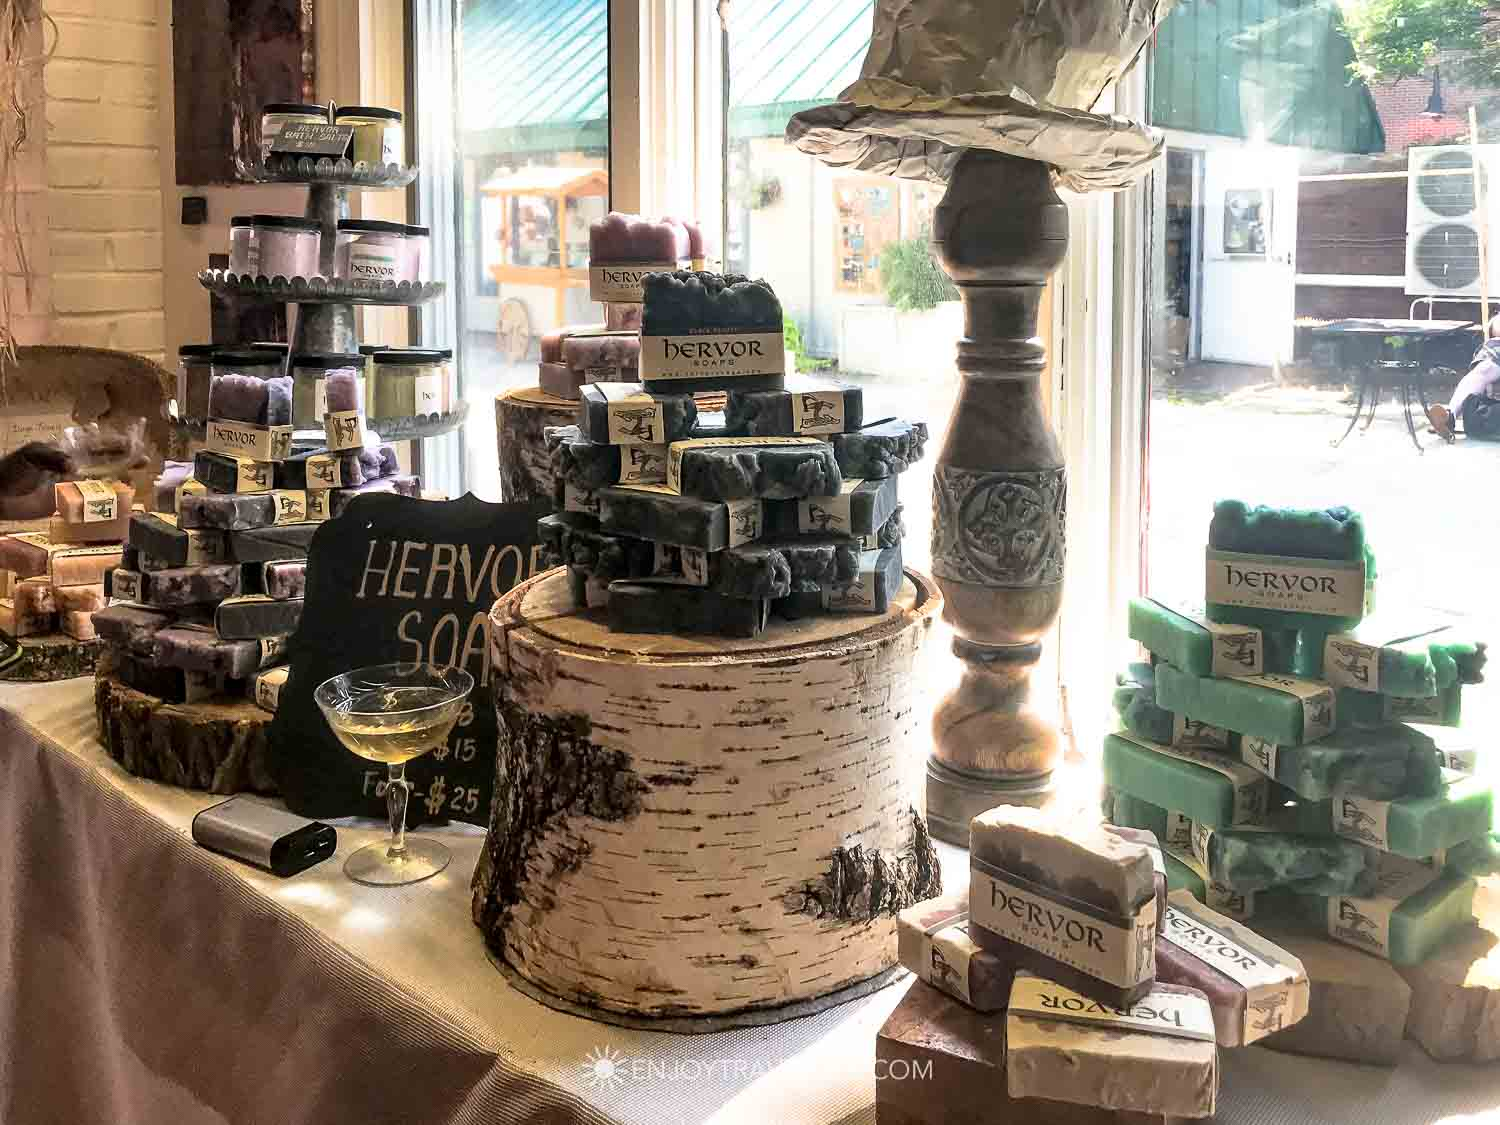 Hervor soaps at Grace & Diggs, Salem MA